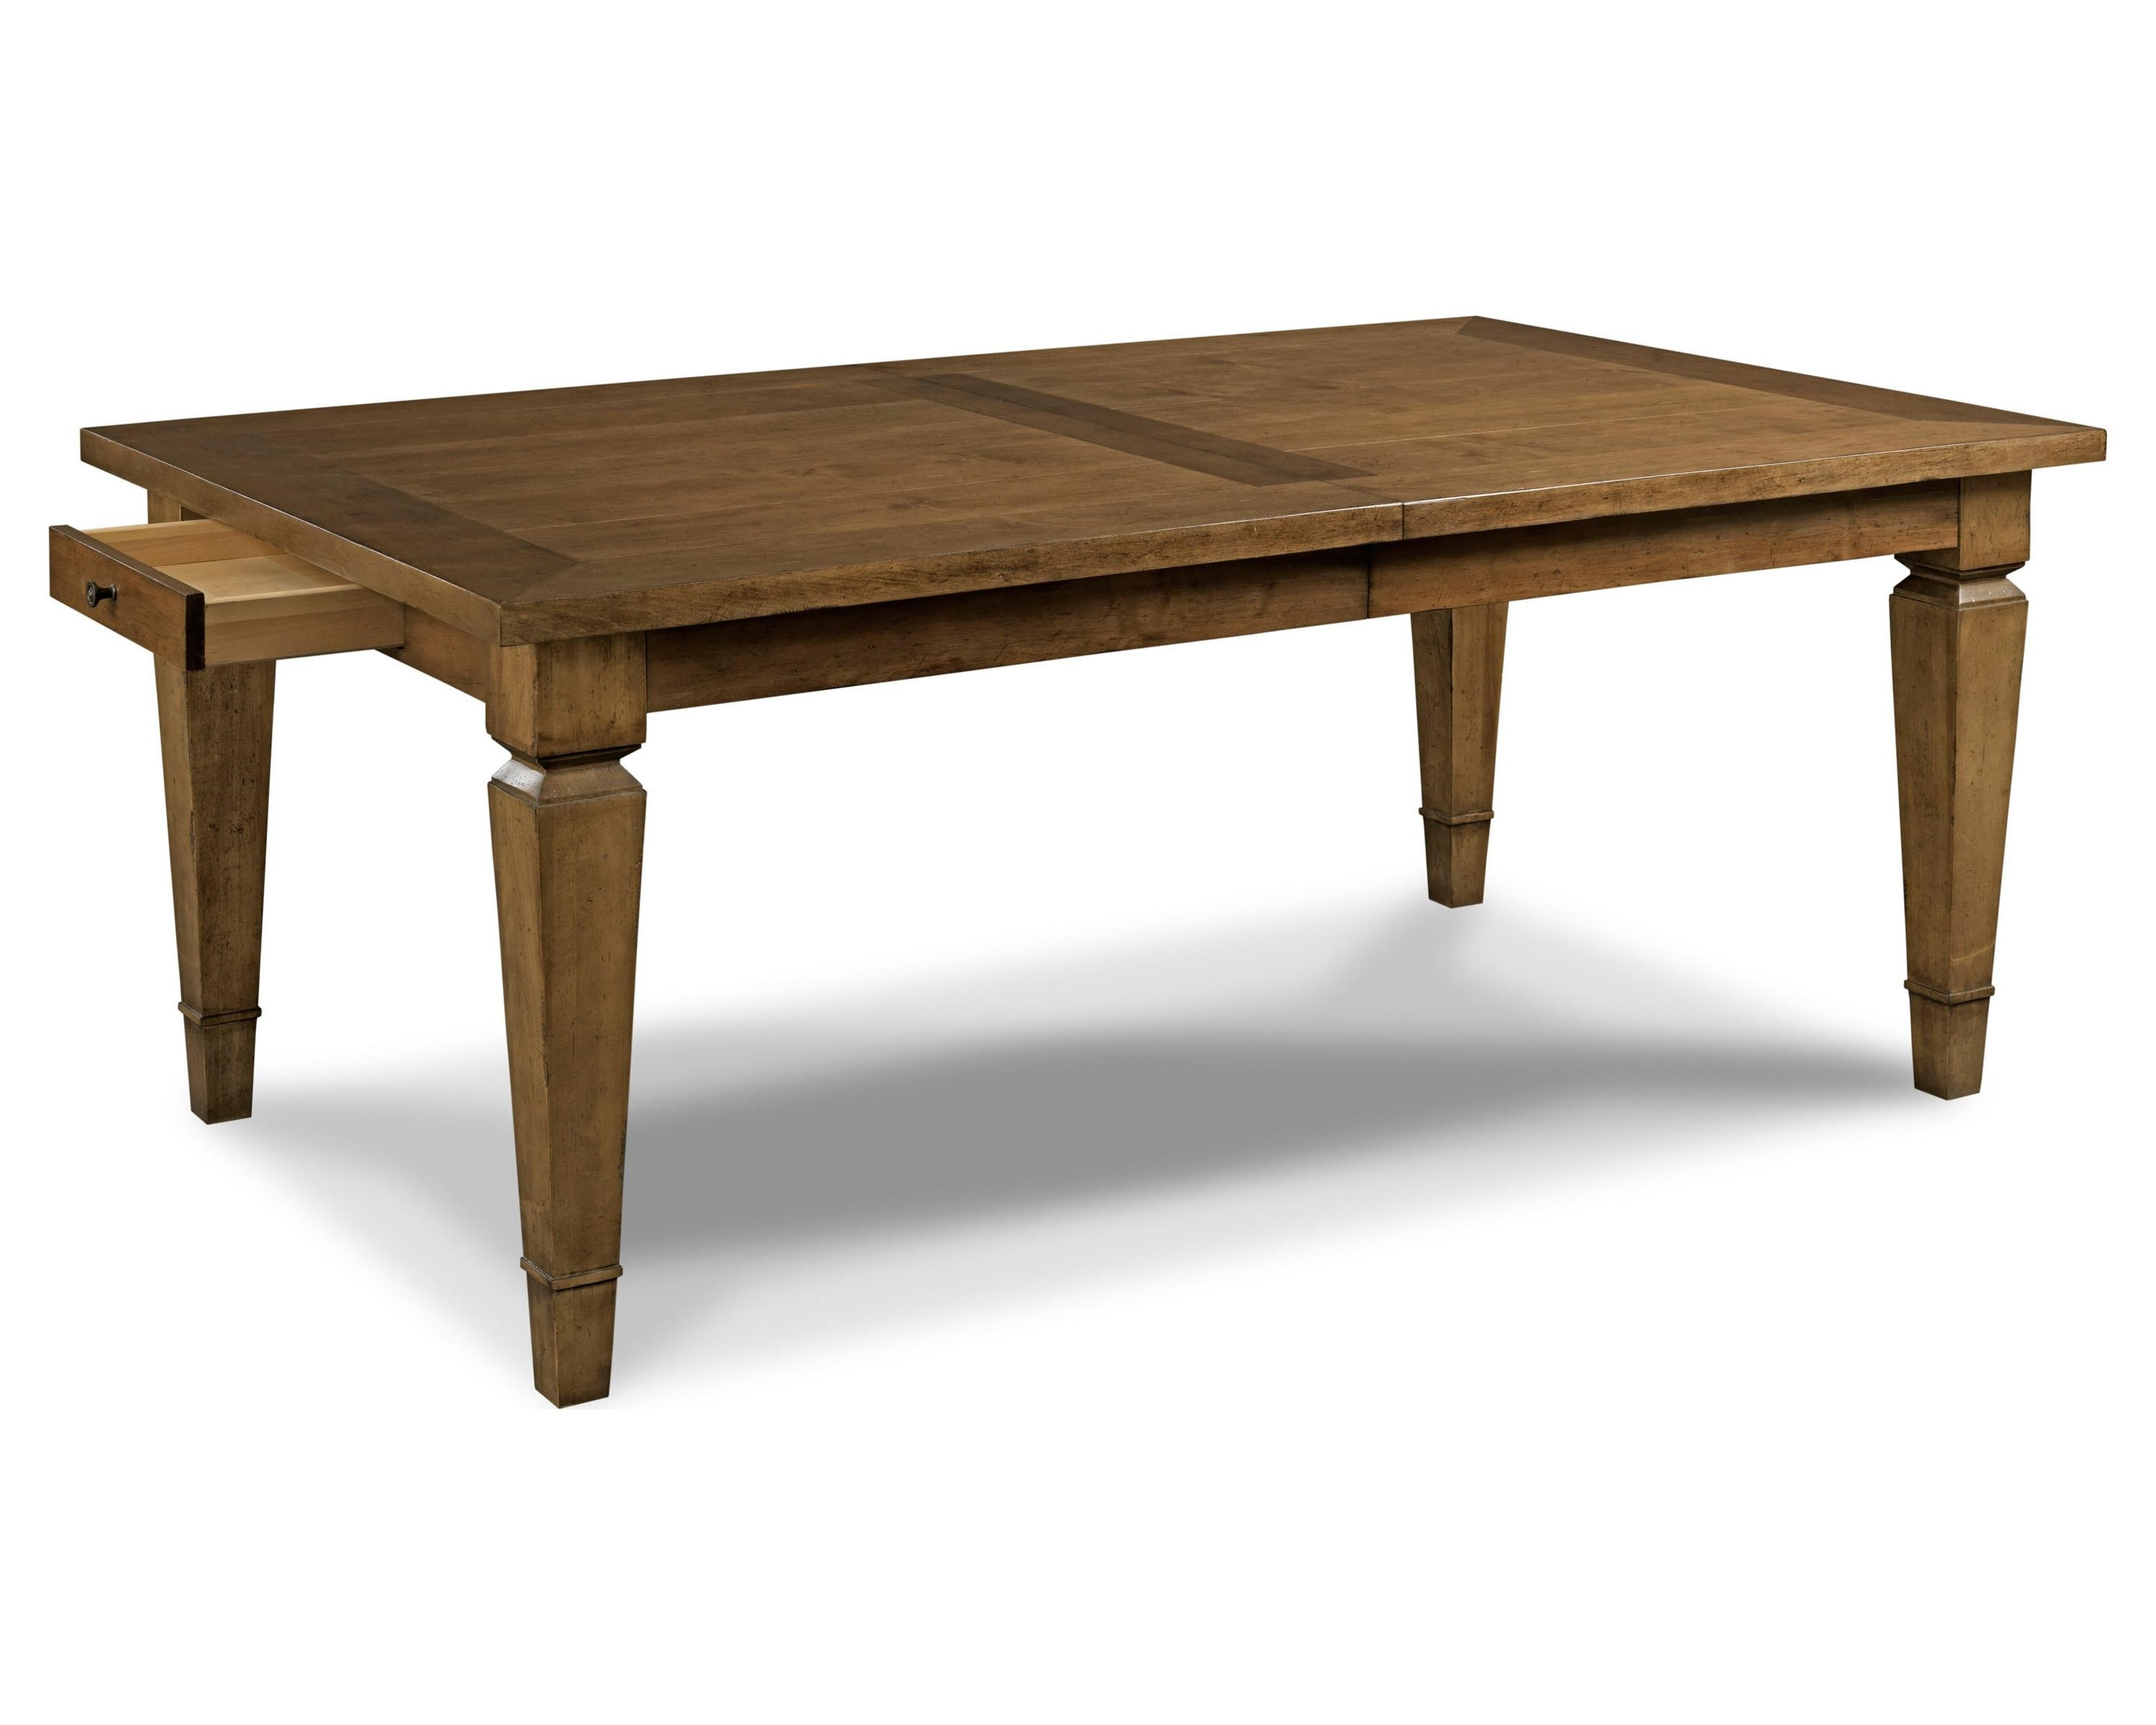 Delicieux Drexel Viage Northwest Passage Dining Table